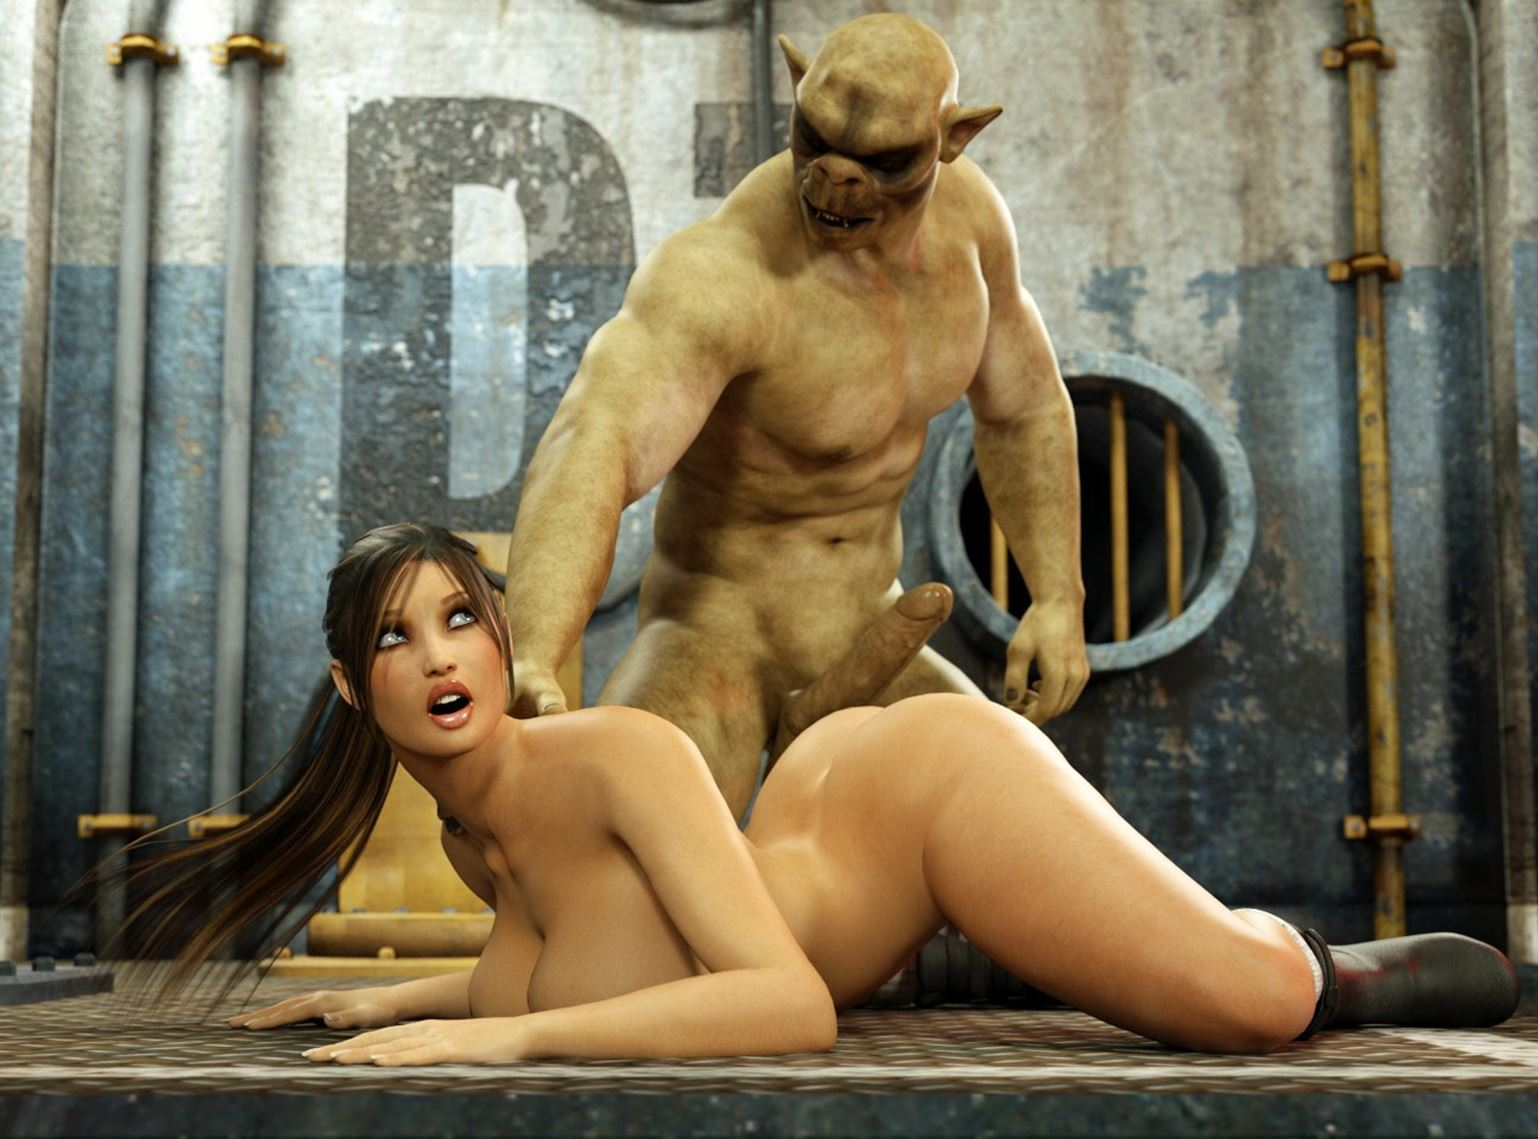 Lara croft porn demon adult gallery